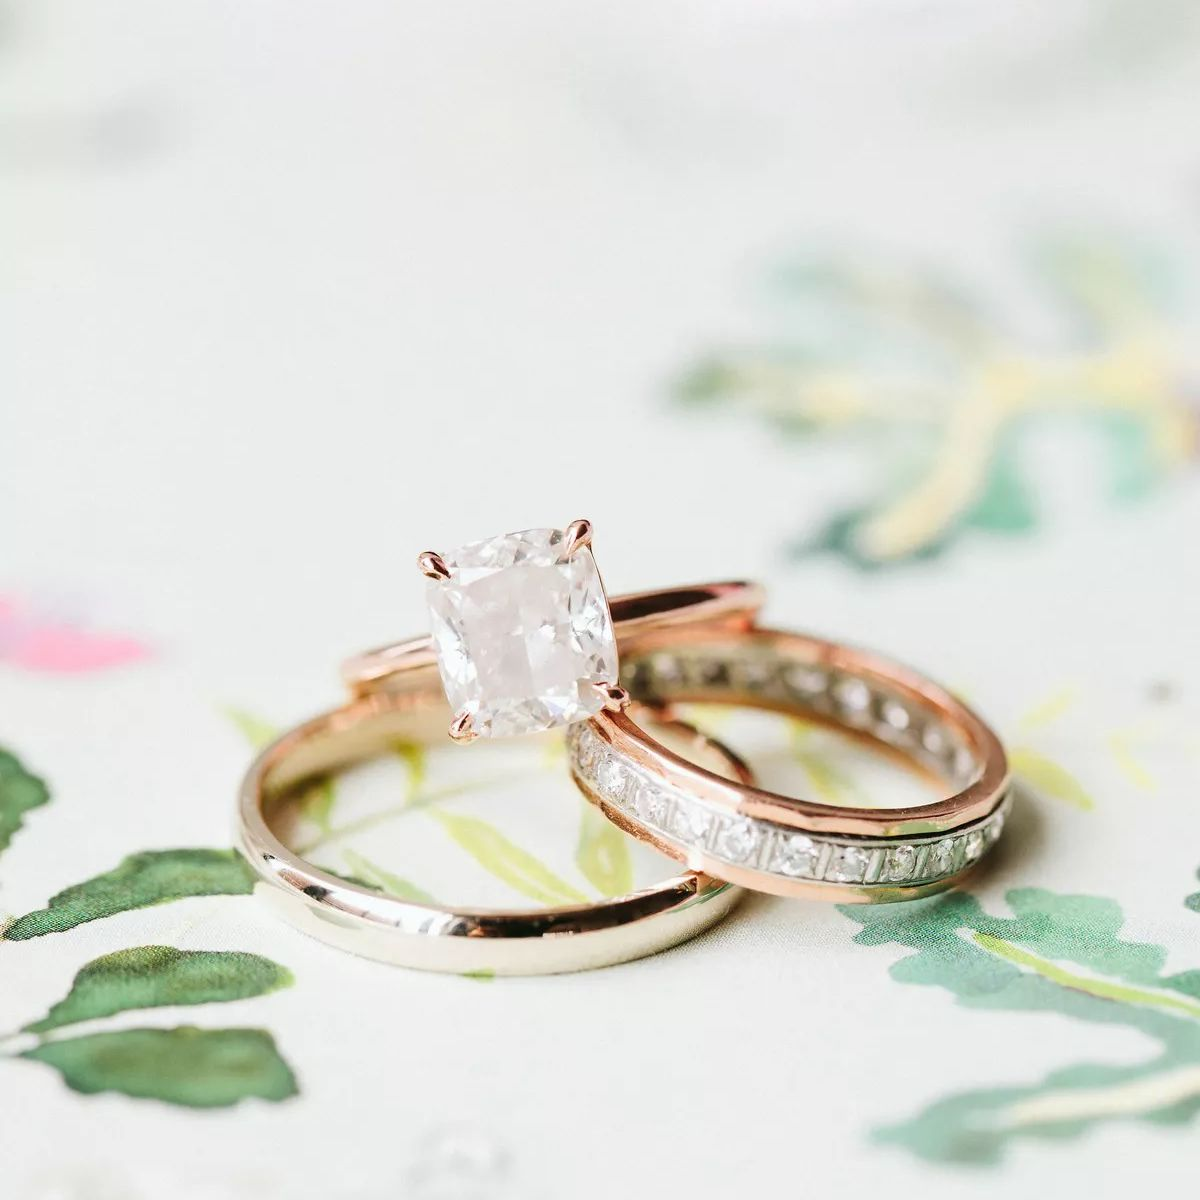 Cushion-cut engagement ring on rose gold band beside two wedding bands